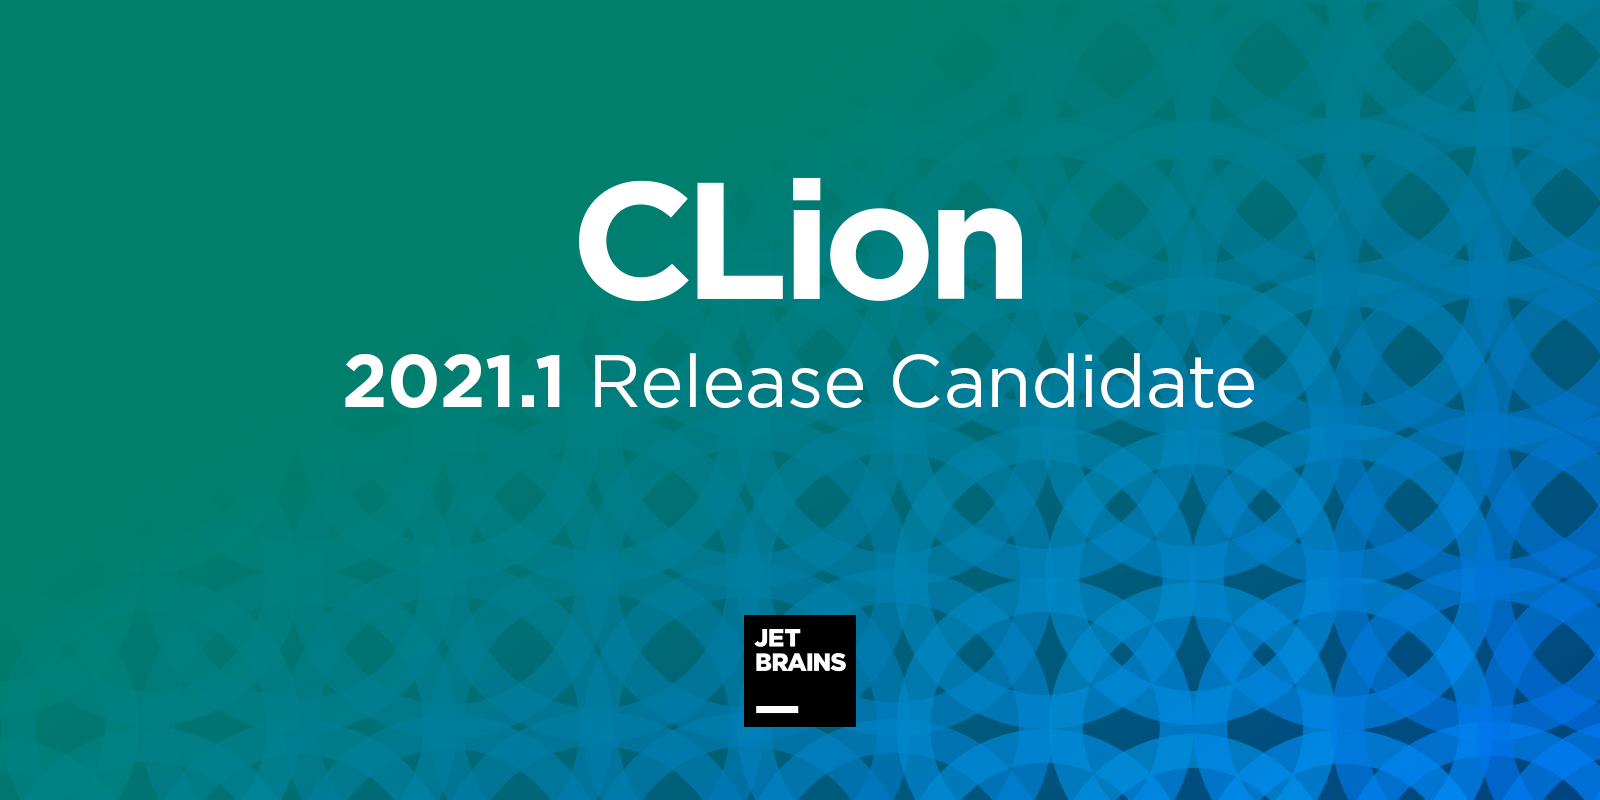 CLion 2021.1 RC